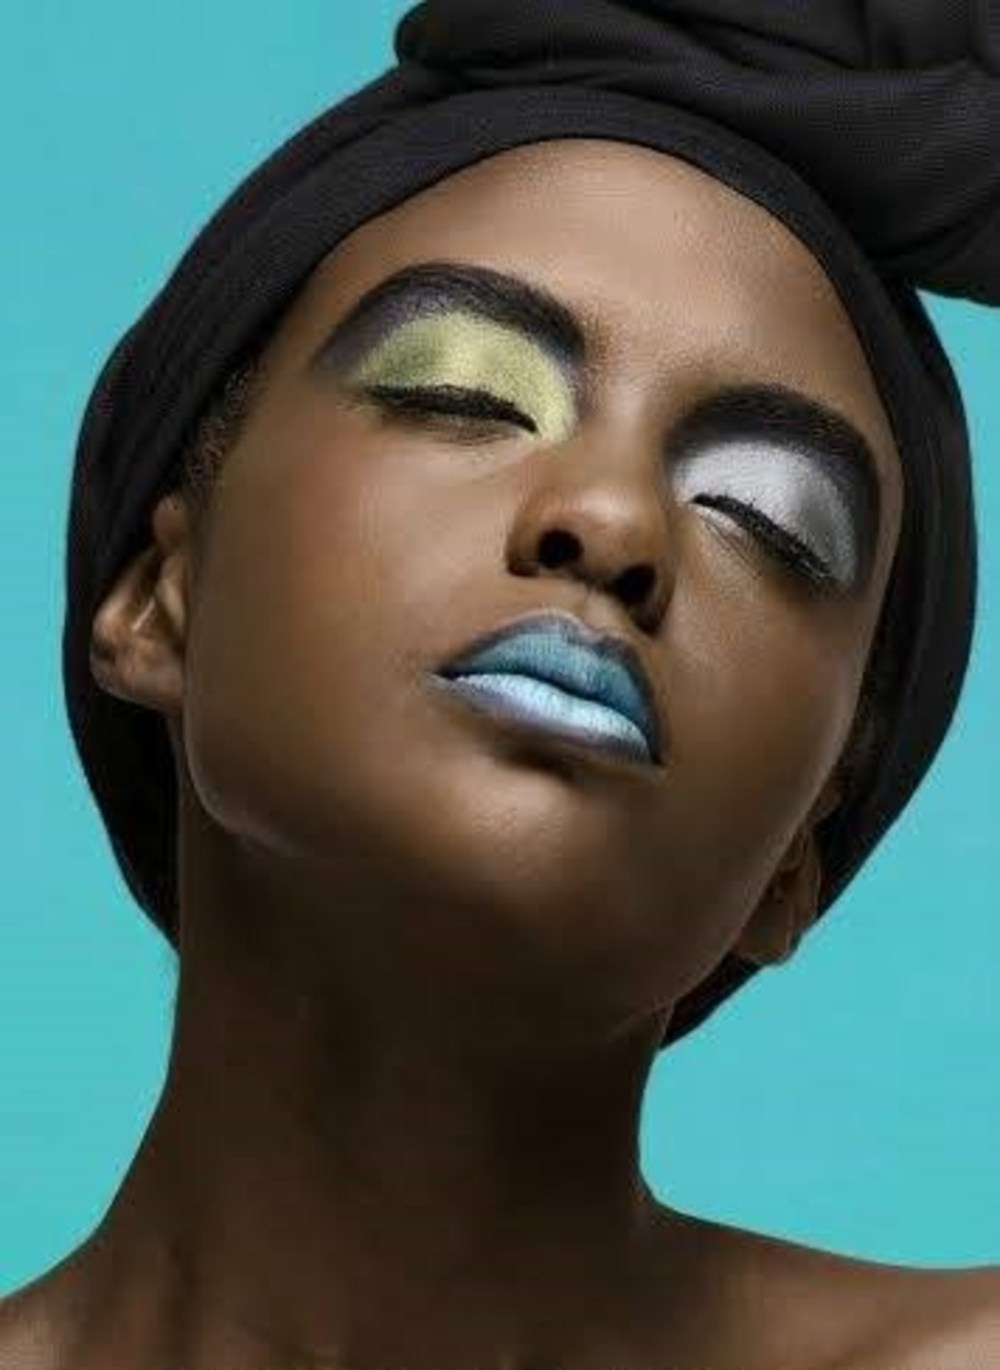 Breaking into the makeup industry: Kavengi Kitonga II #MakeUpArtist #TDSvoices